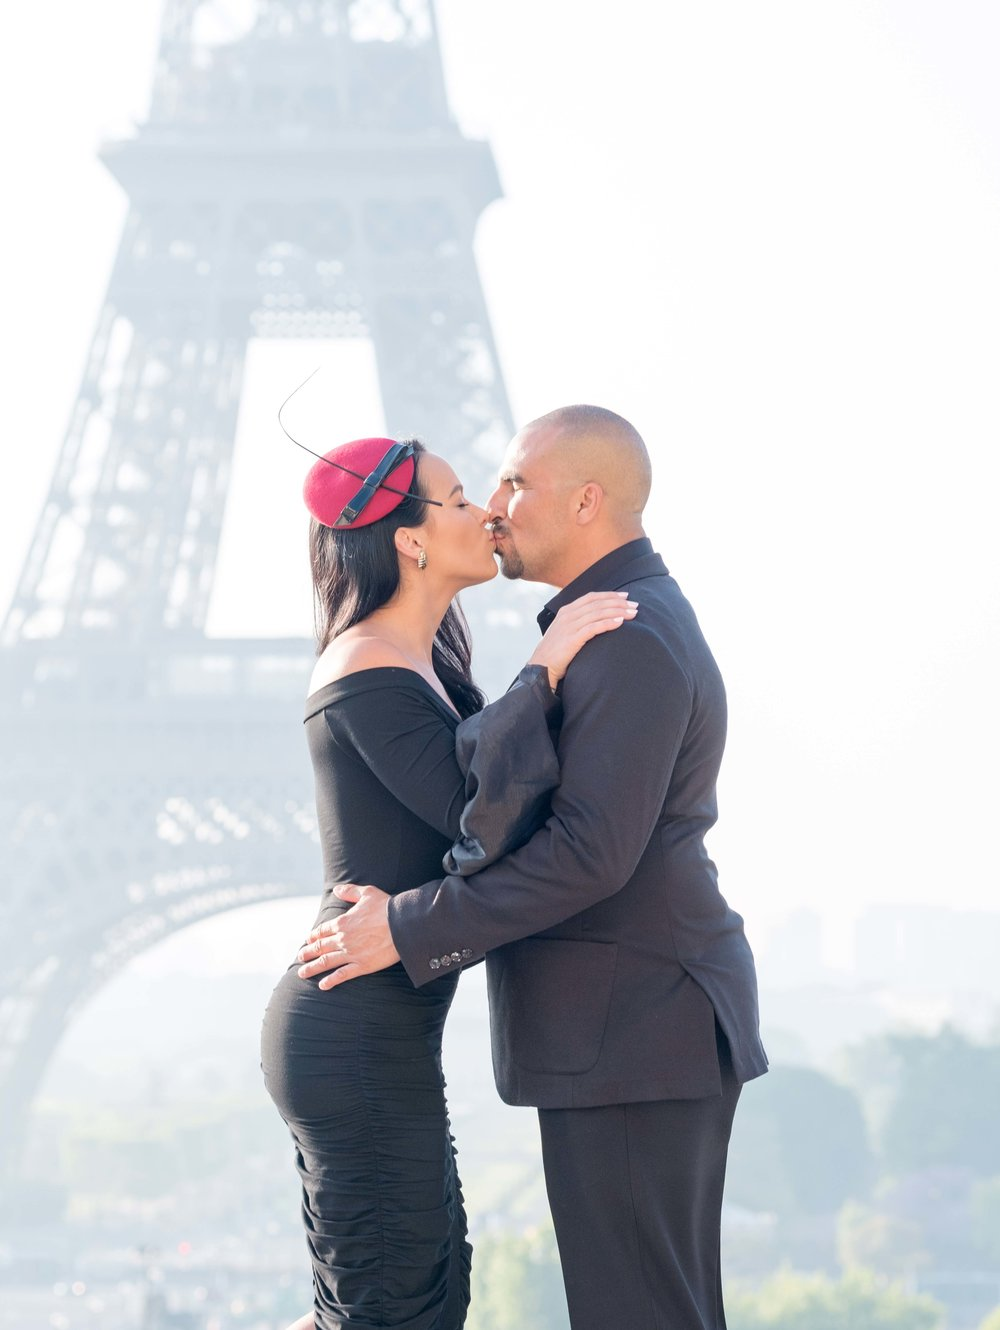 picture me paris 1 hour photo session - ❀ Choose from 1 Paris location like the Eiffel Tower, Louvre or Montmartre❀ Perfect for couples, families, groups & individuals❀You'll receive priceless images of your time in Paris, images you'll look back on for a lifetime.